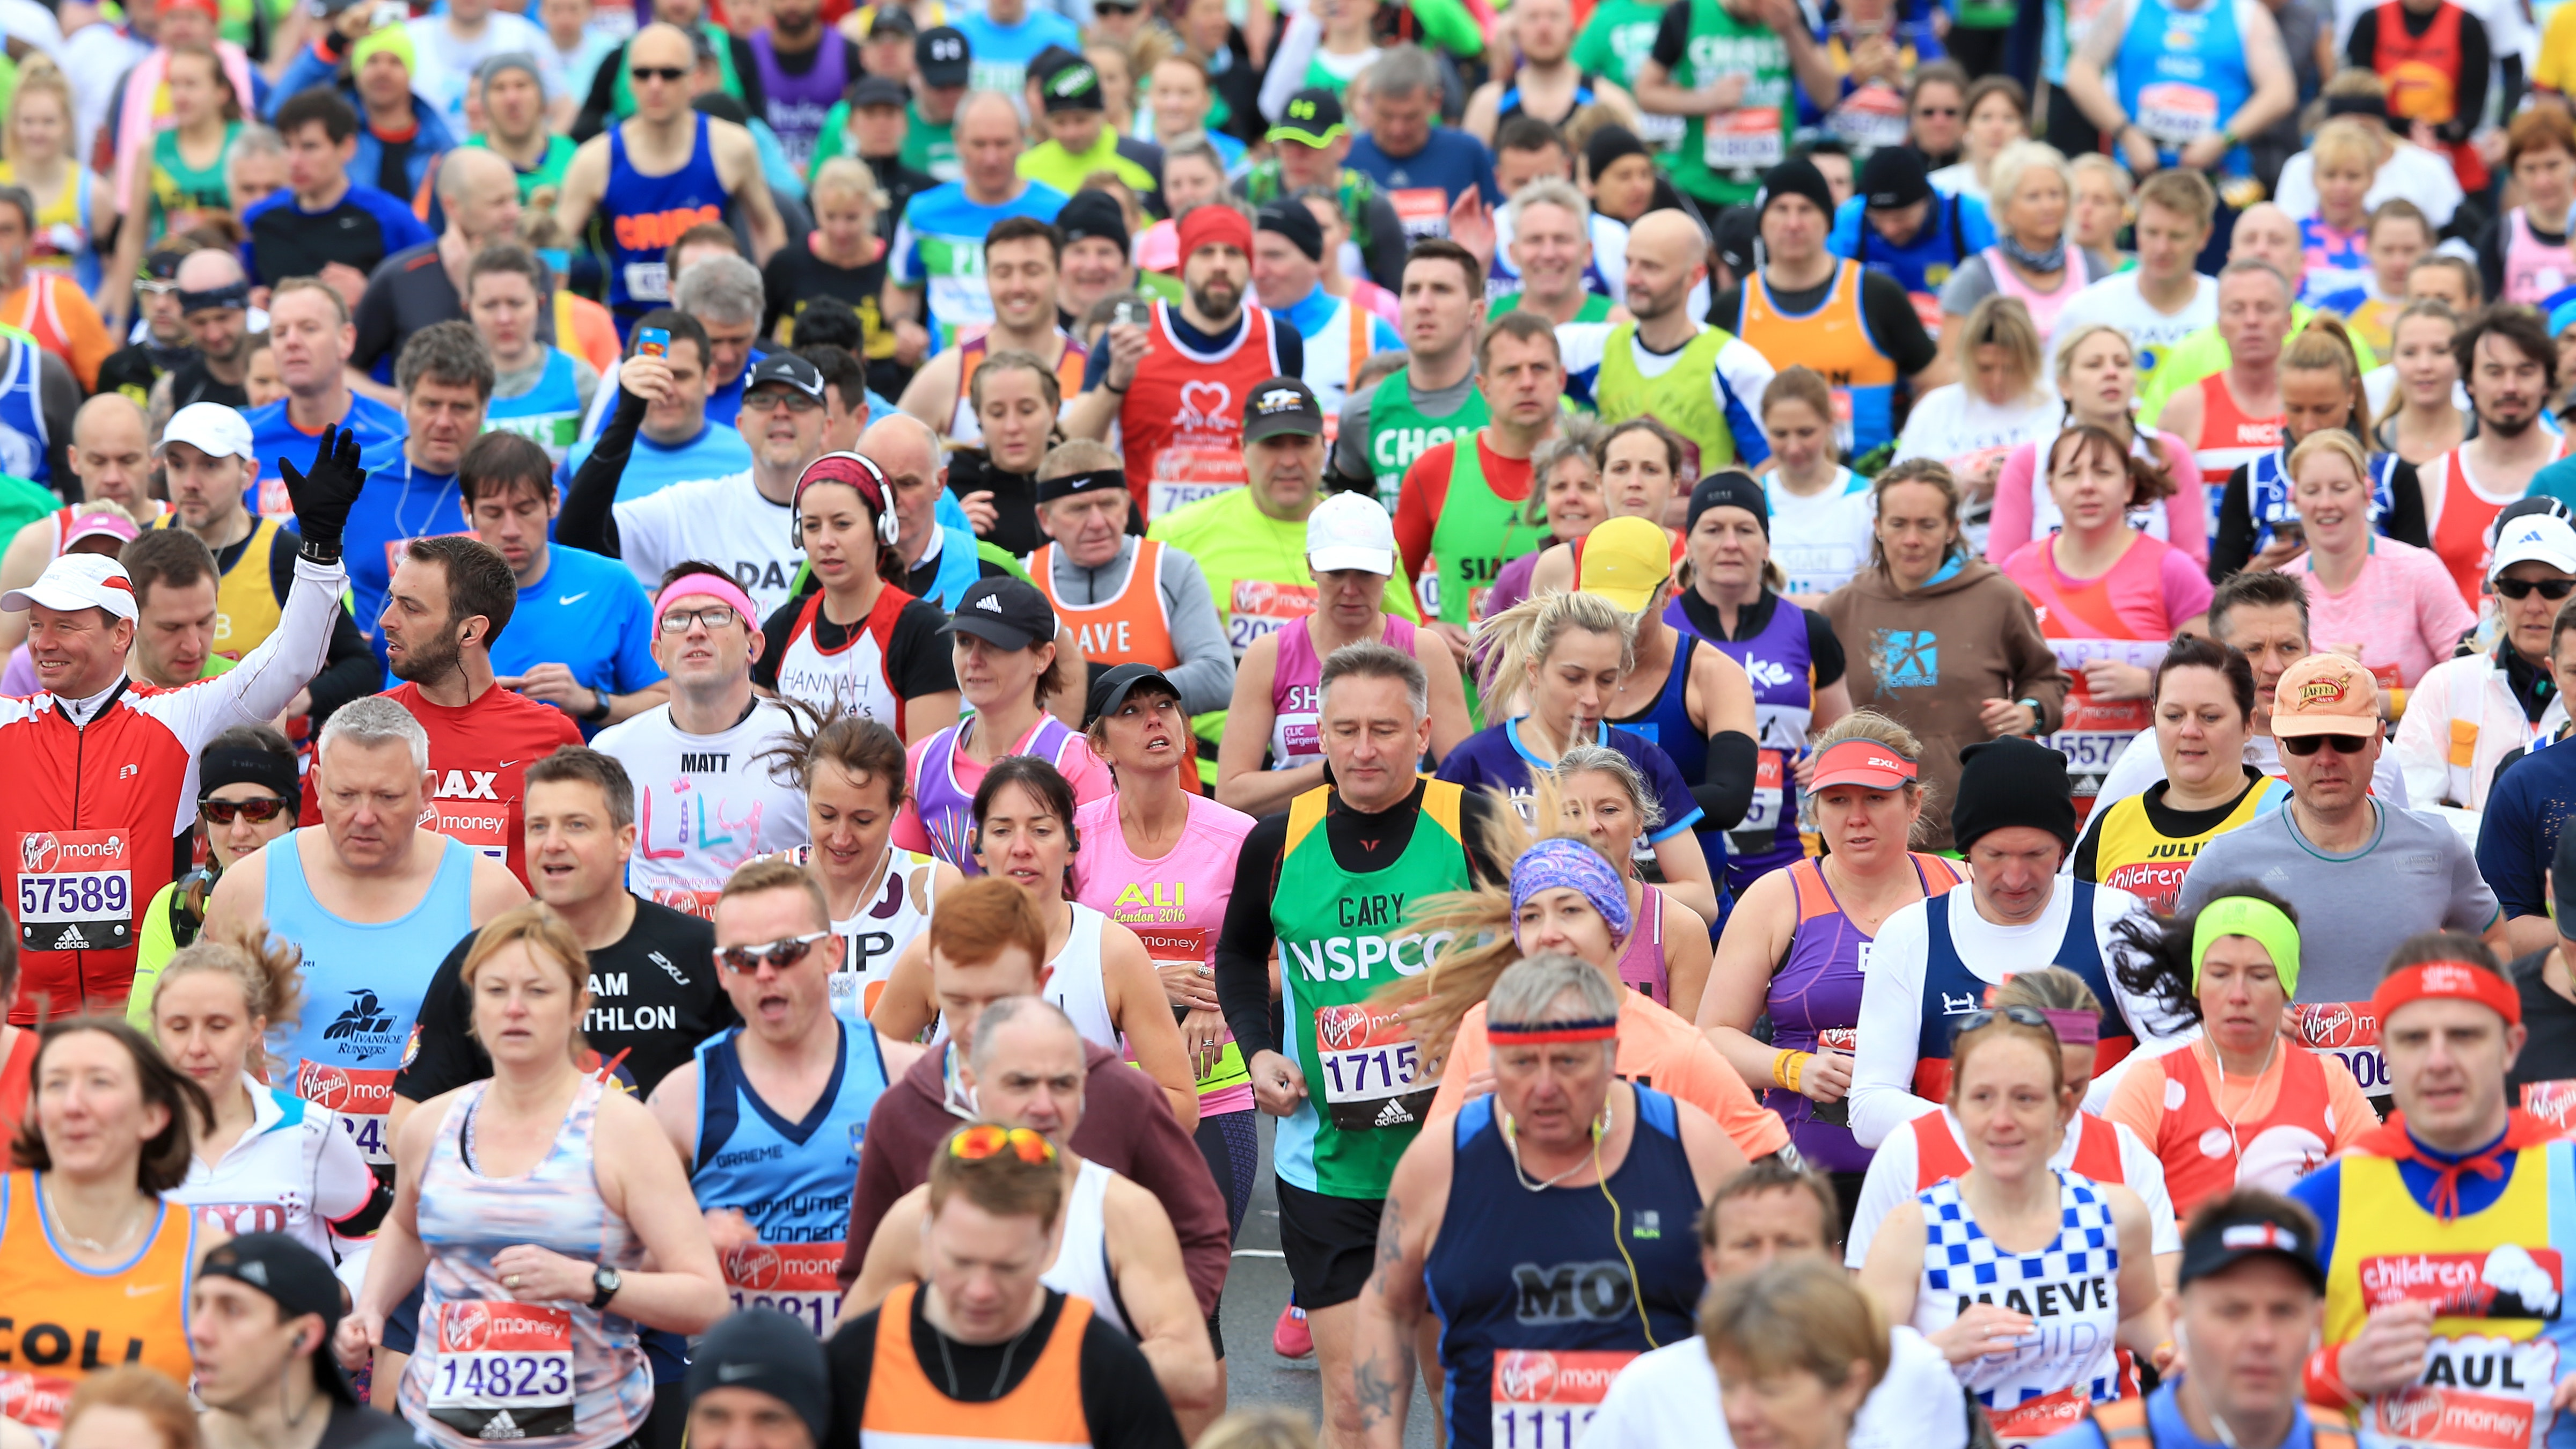 The most asked questions about the London Marathon ...